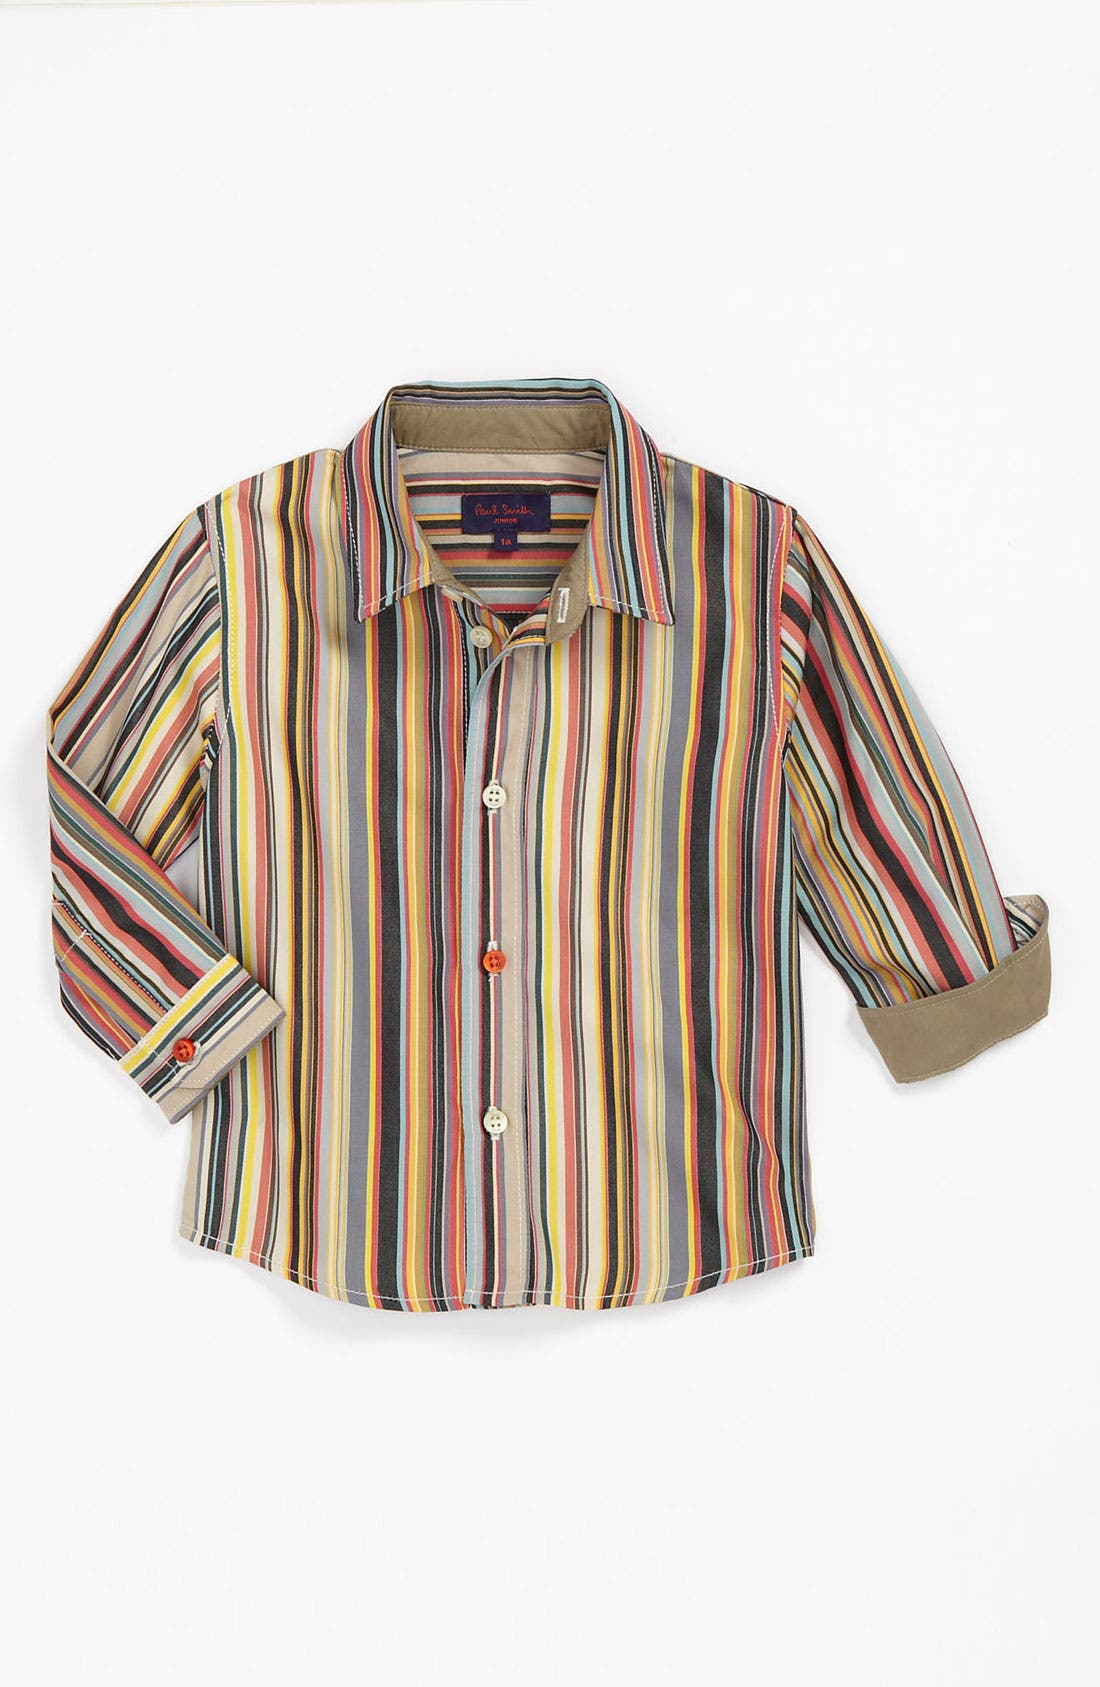 Alternate Image 1 Selected - Paul Smith Junior Stripe Dress Shirt (Baby)